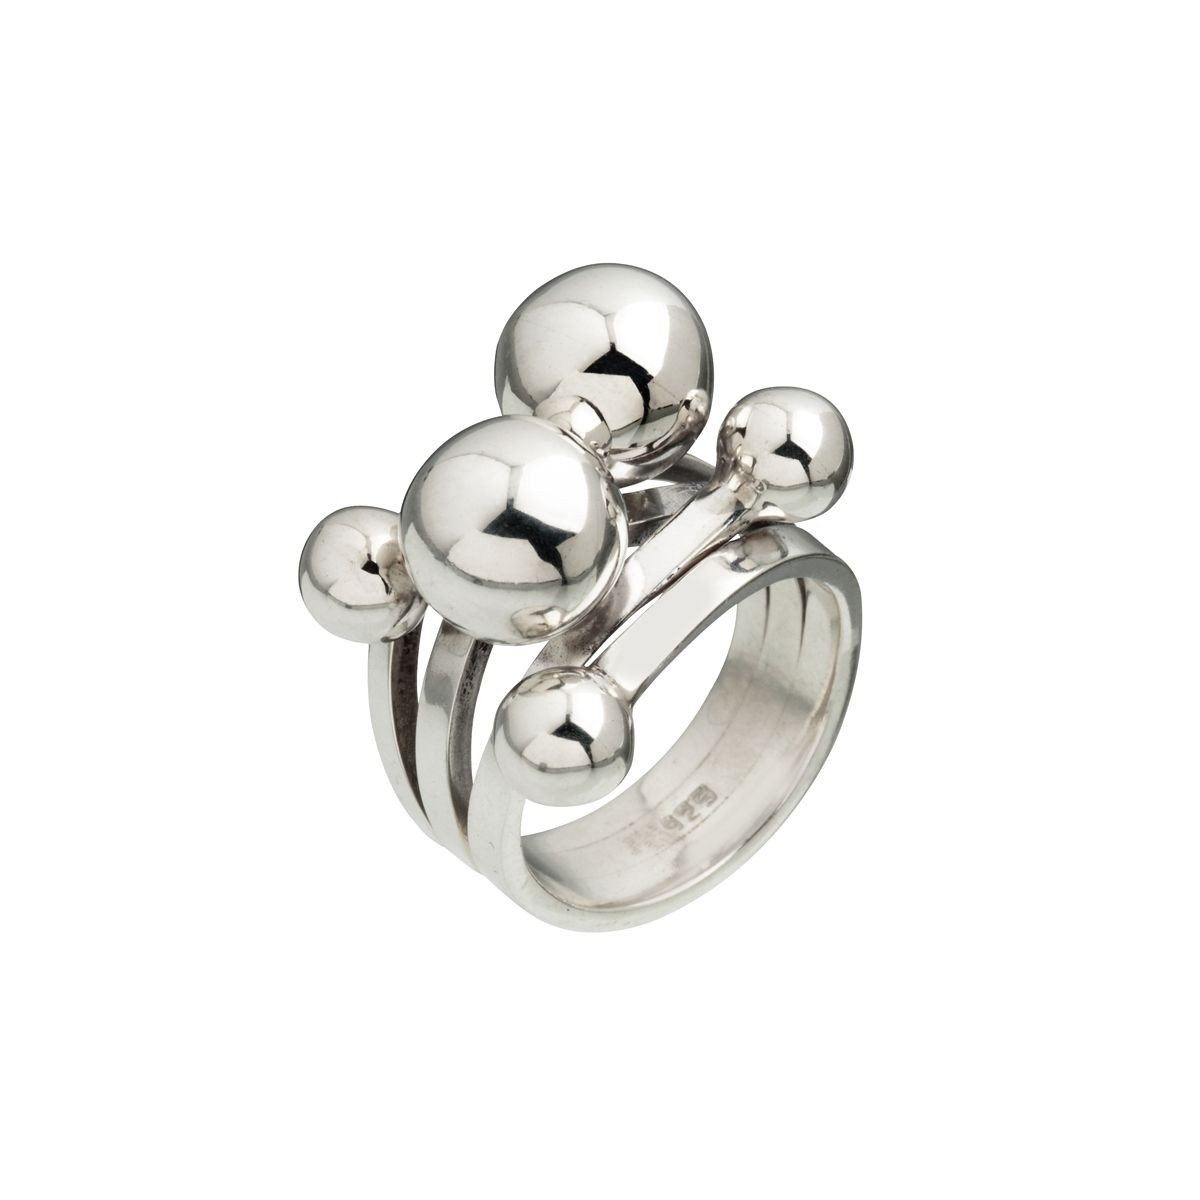 Silver Tiny Infinity signe Anneau Argent Sterling 925 BEST DEAL Bijoux Taille 10